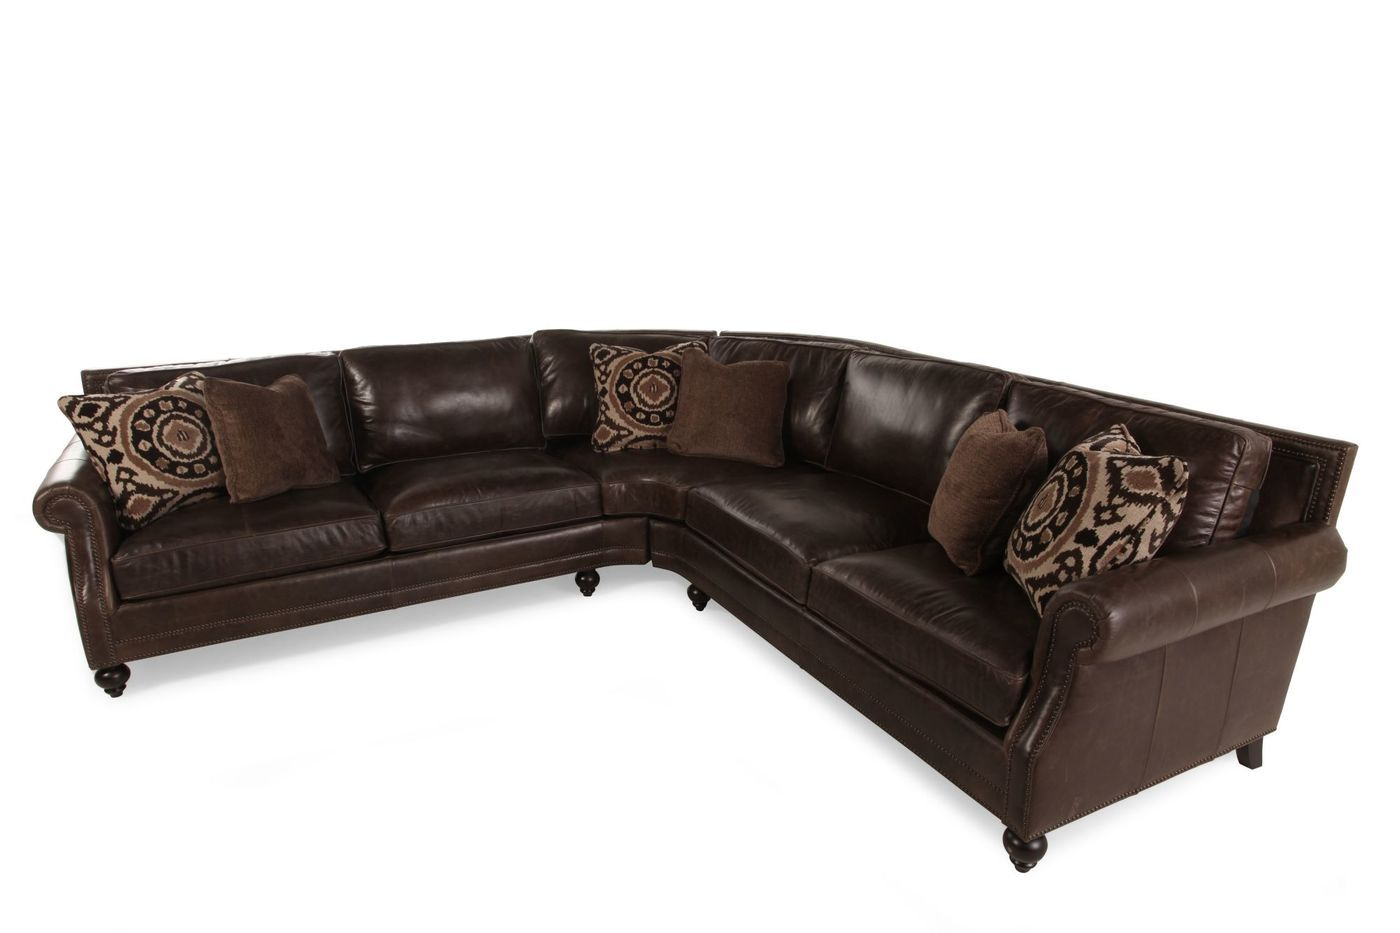 Awesome Bernhardt Sectional Sofa Inspirational 81 About Remodel Modern Ideas With